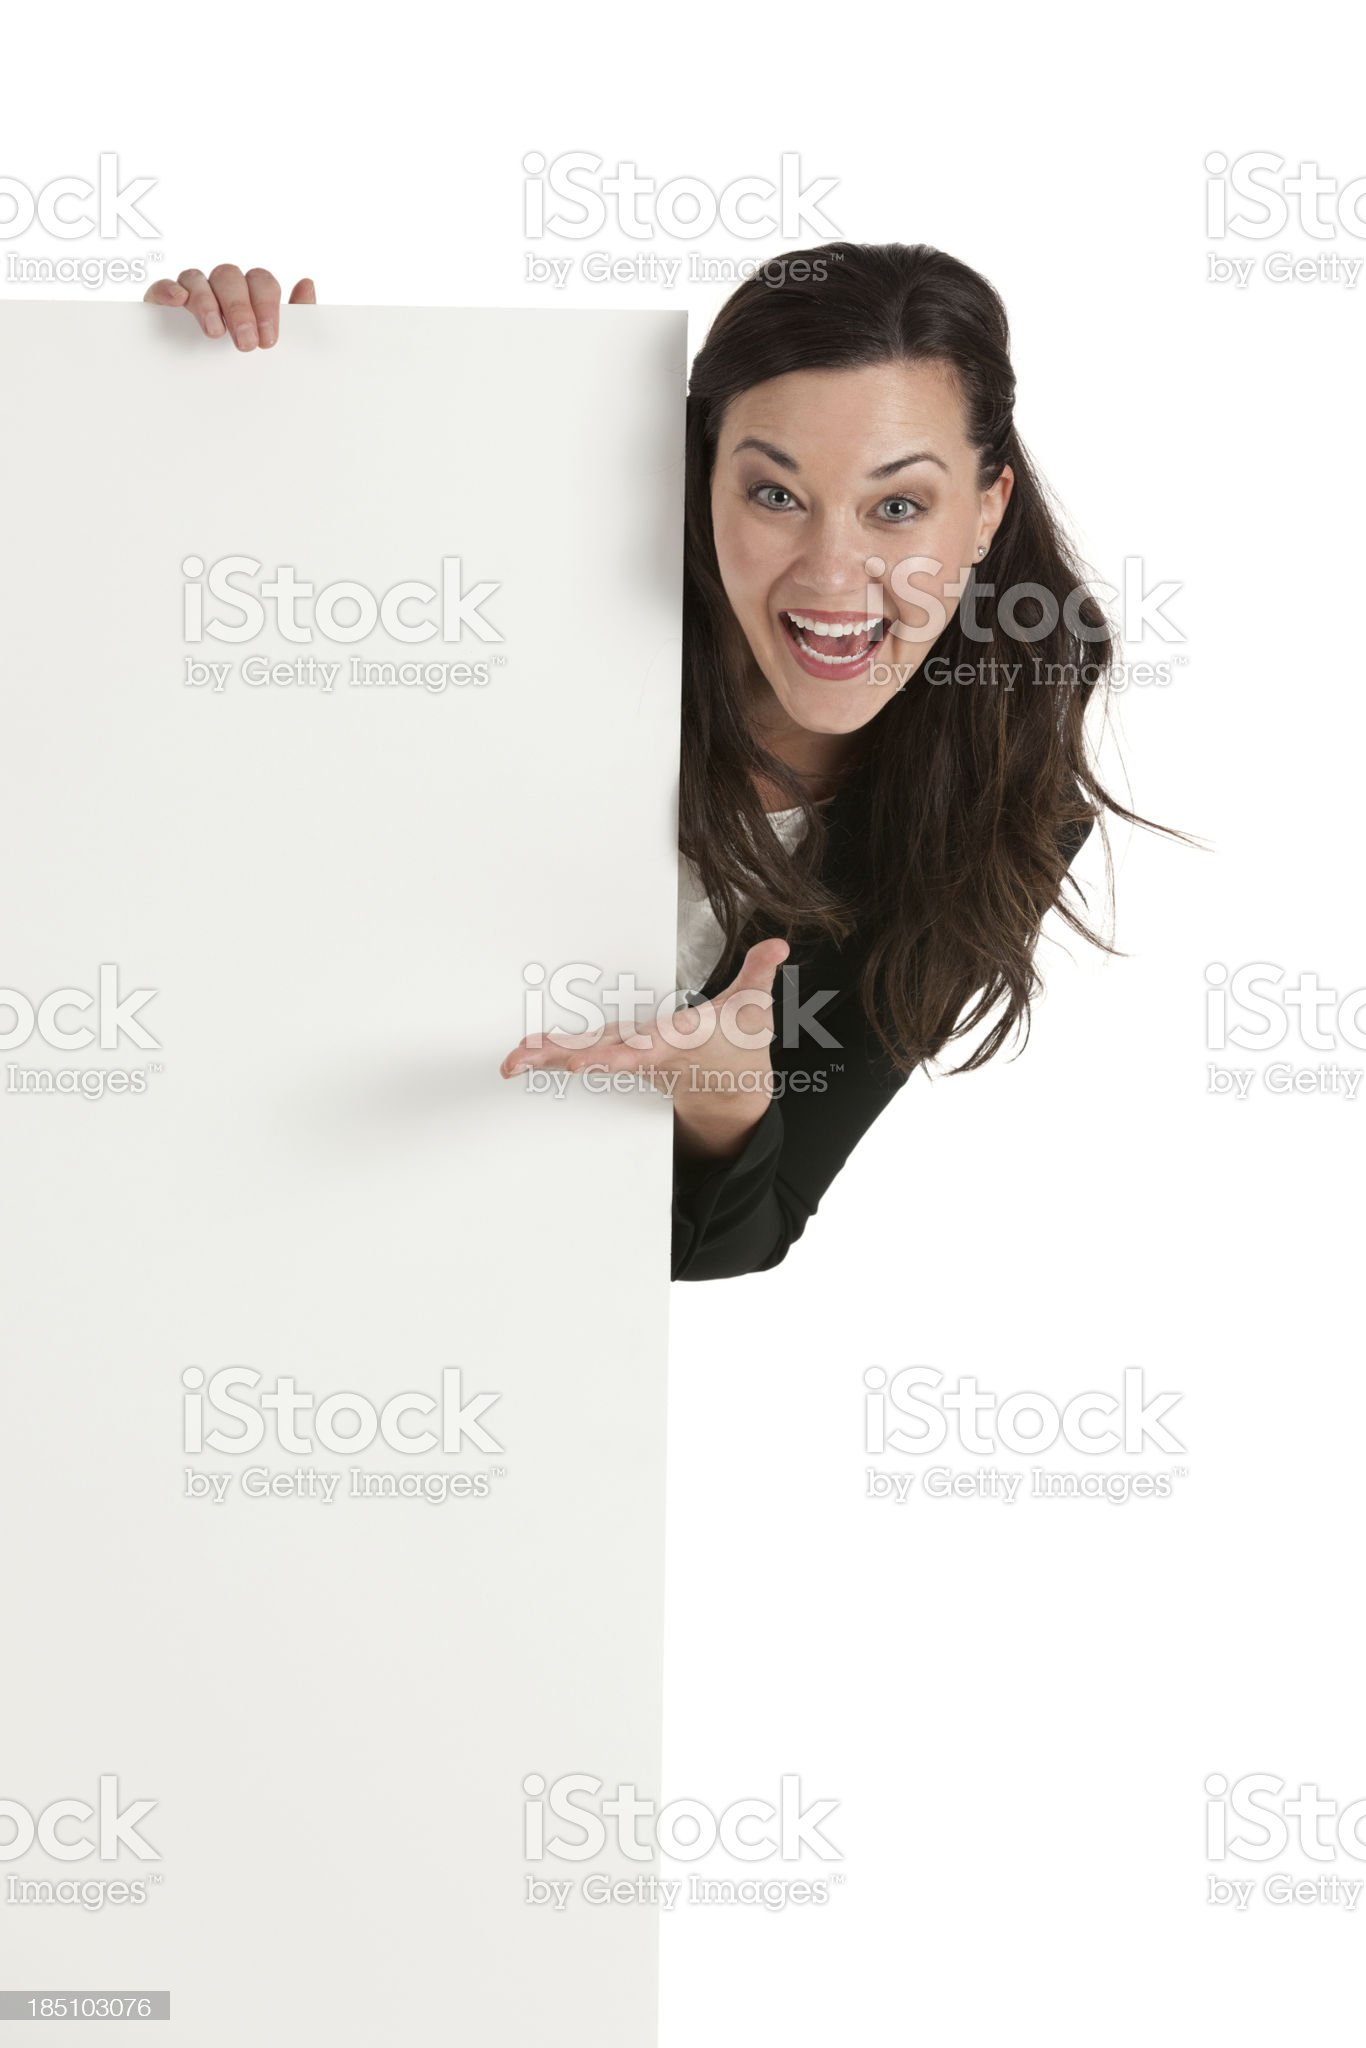 Happy businesswoman behind a placard royalty-free stock photo